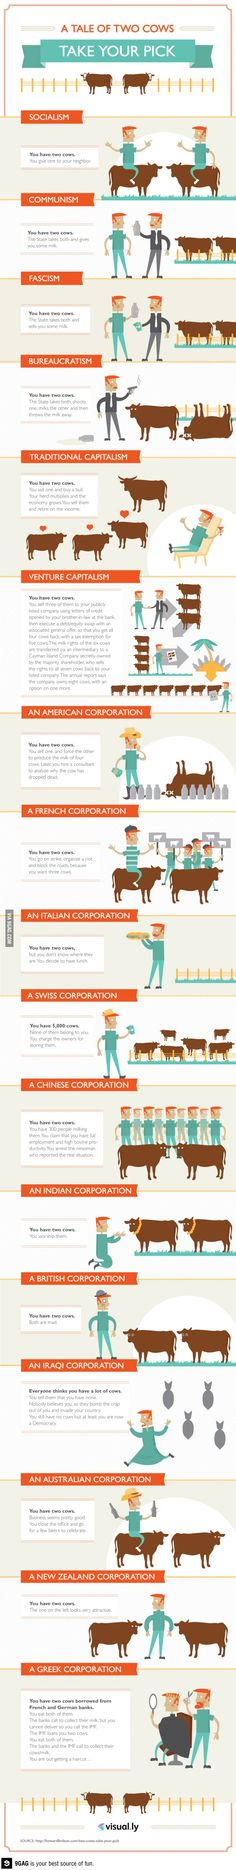 You have two cows!